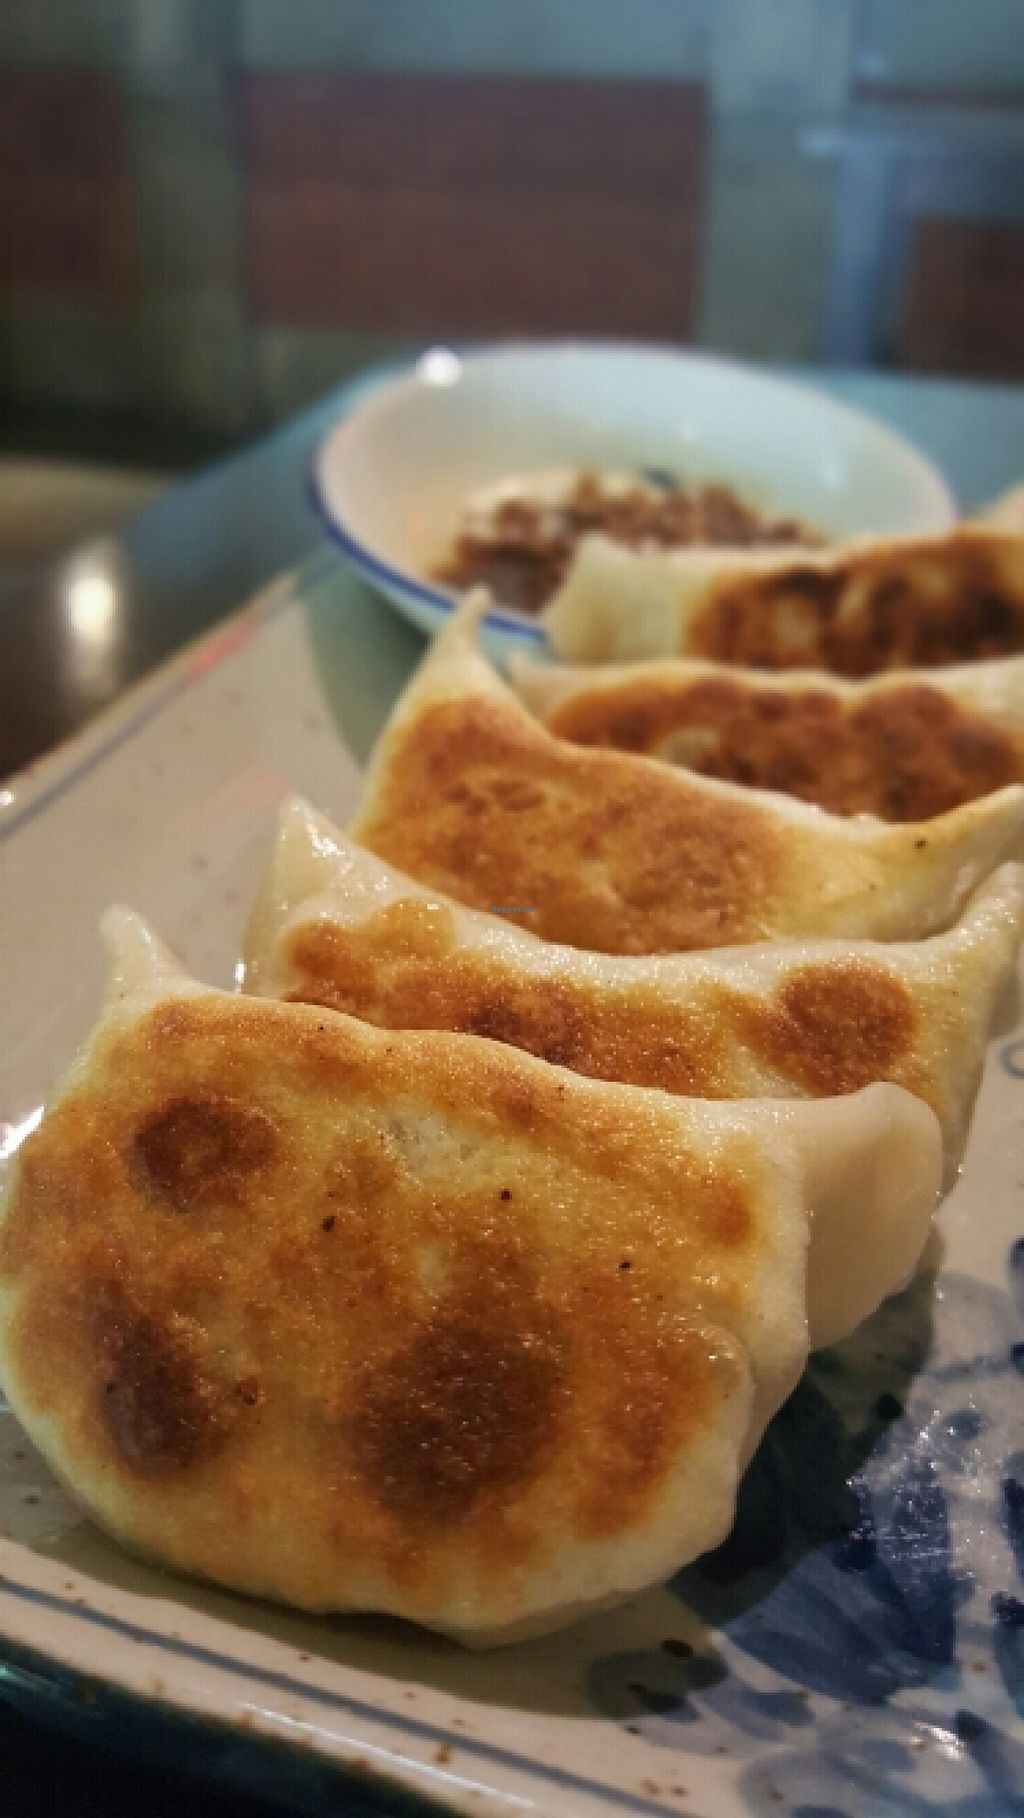 """Photo of Old Street Taiwanese Delicacies - M Mall Penang Times Square  by <a href=""""/members/profile/JessieLim"""">JessieLim</a> <br/>Pan Fried Dumplings  <br/> May 10, 2016  - <a href='/contact/abuse/image/72689/148429'>Report</a>"""